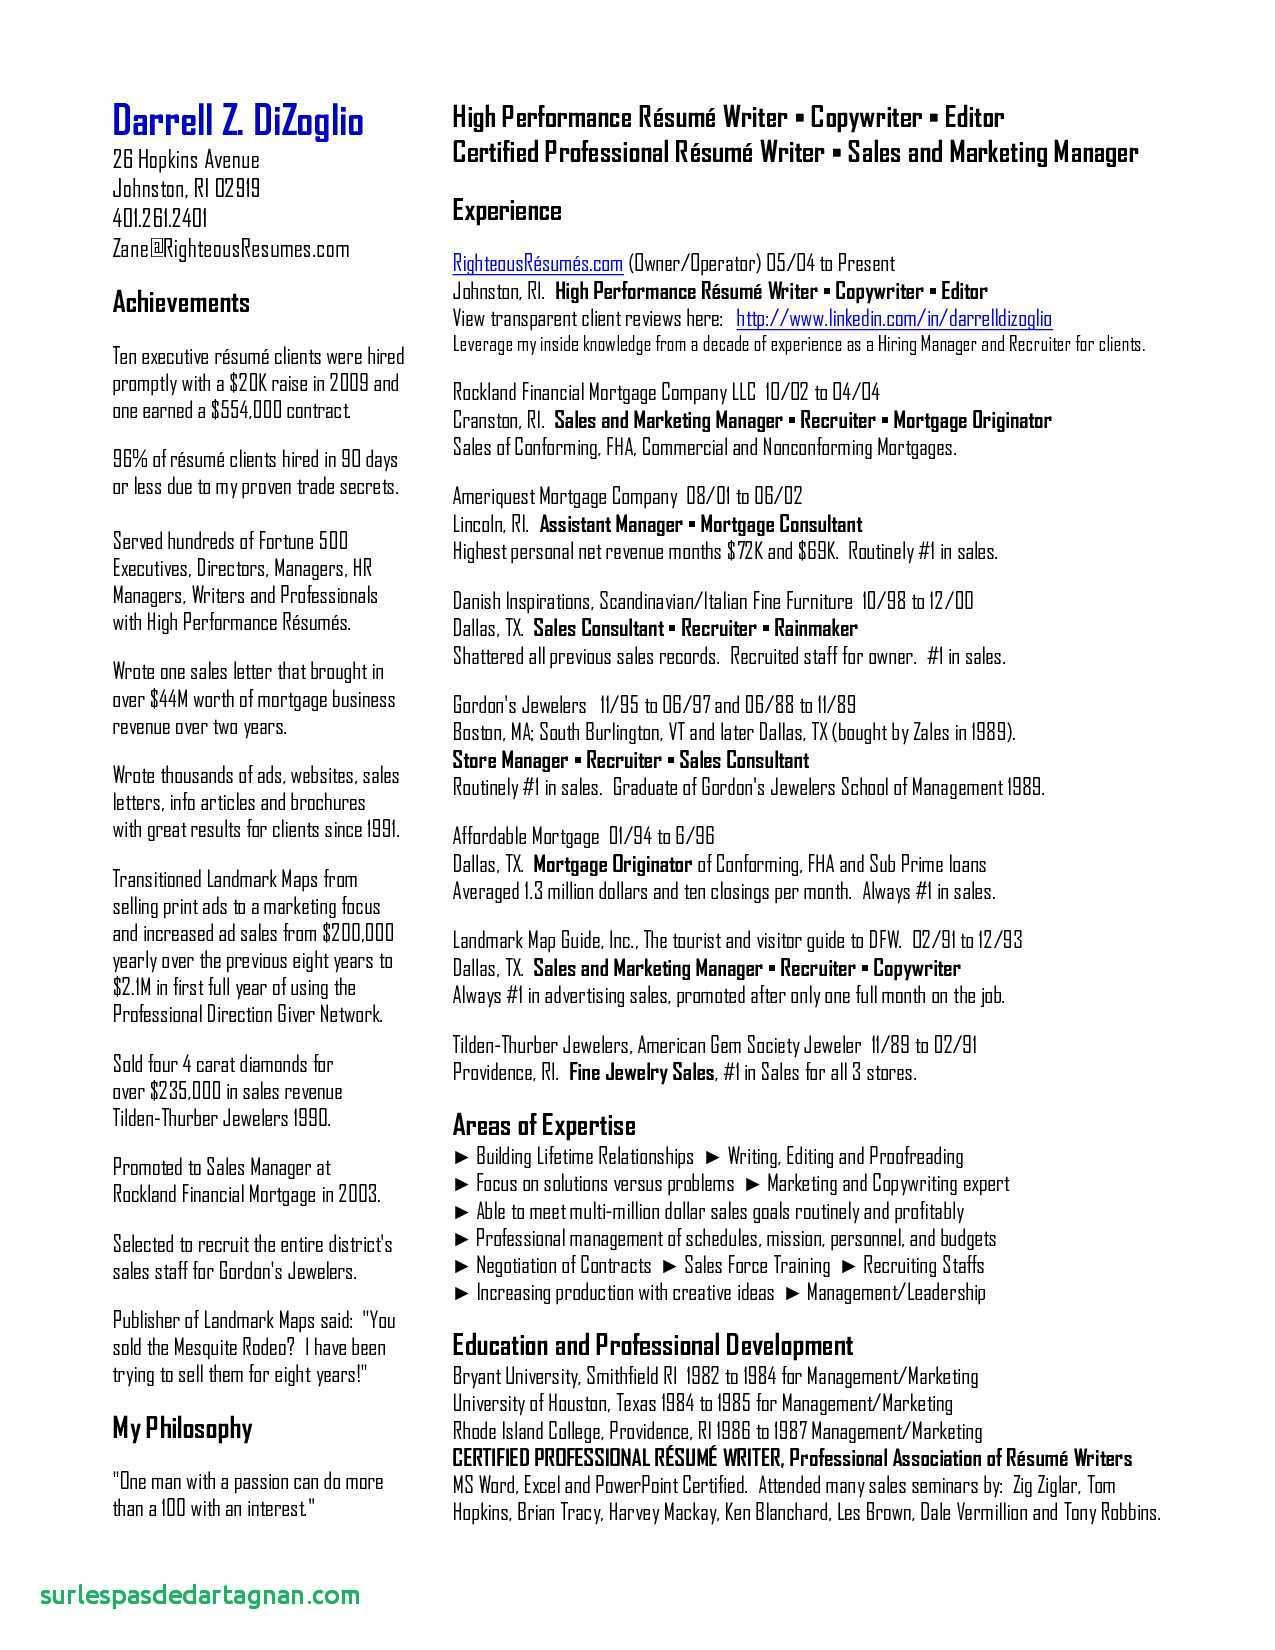 Resume Sites for Recruiters - Business Consulting Website Templates Popular Free Printable Resume